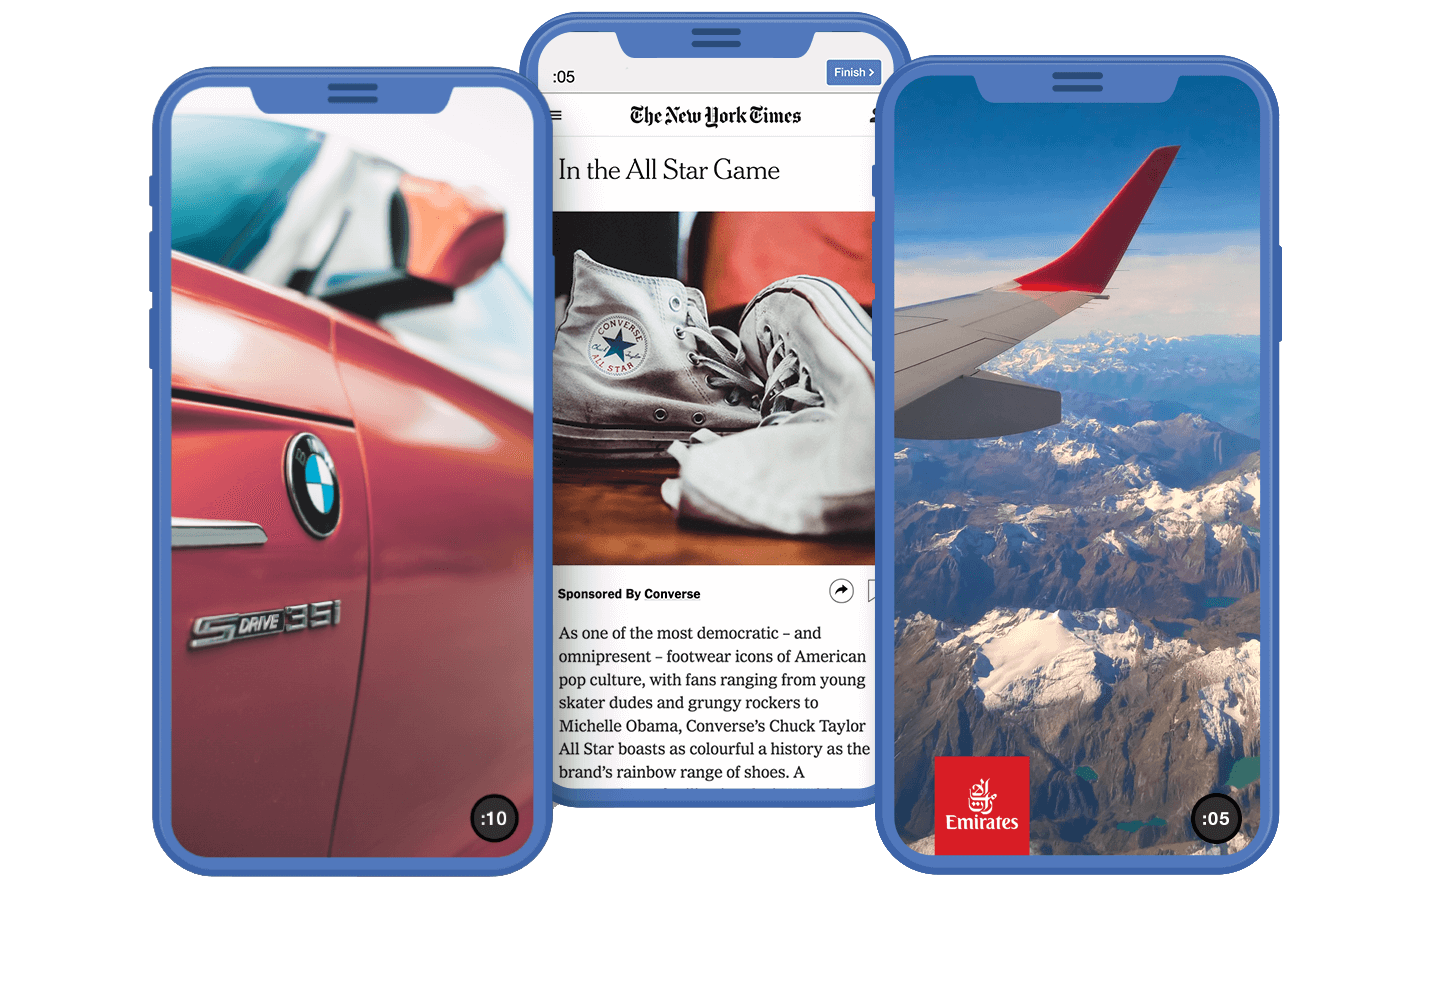 HyprMX - Brand Ads for Mobile Apps from Top Fortune 500